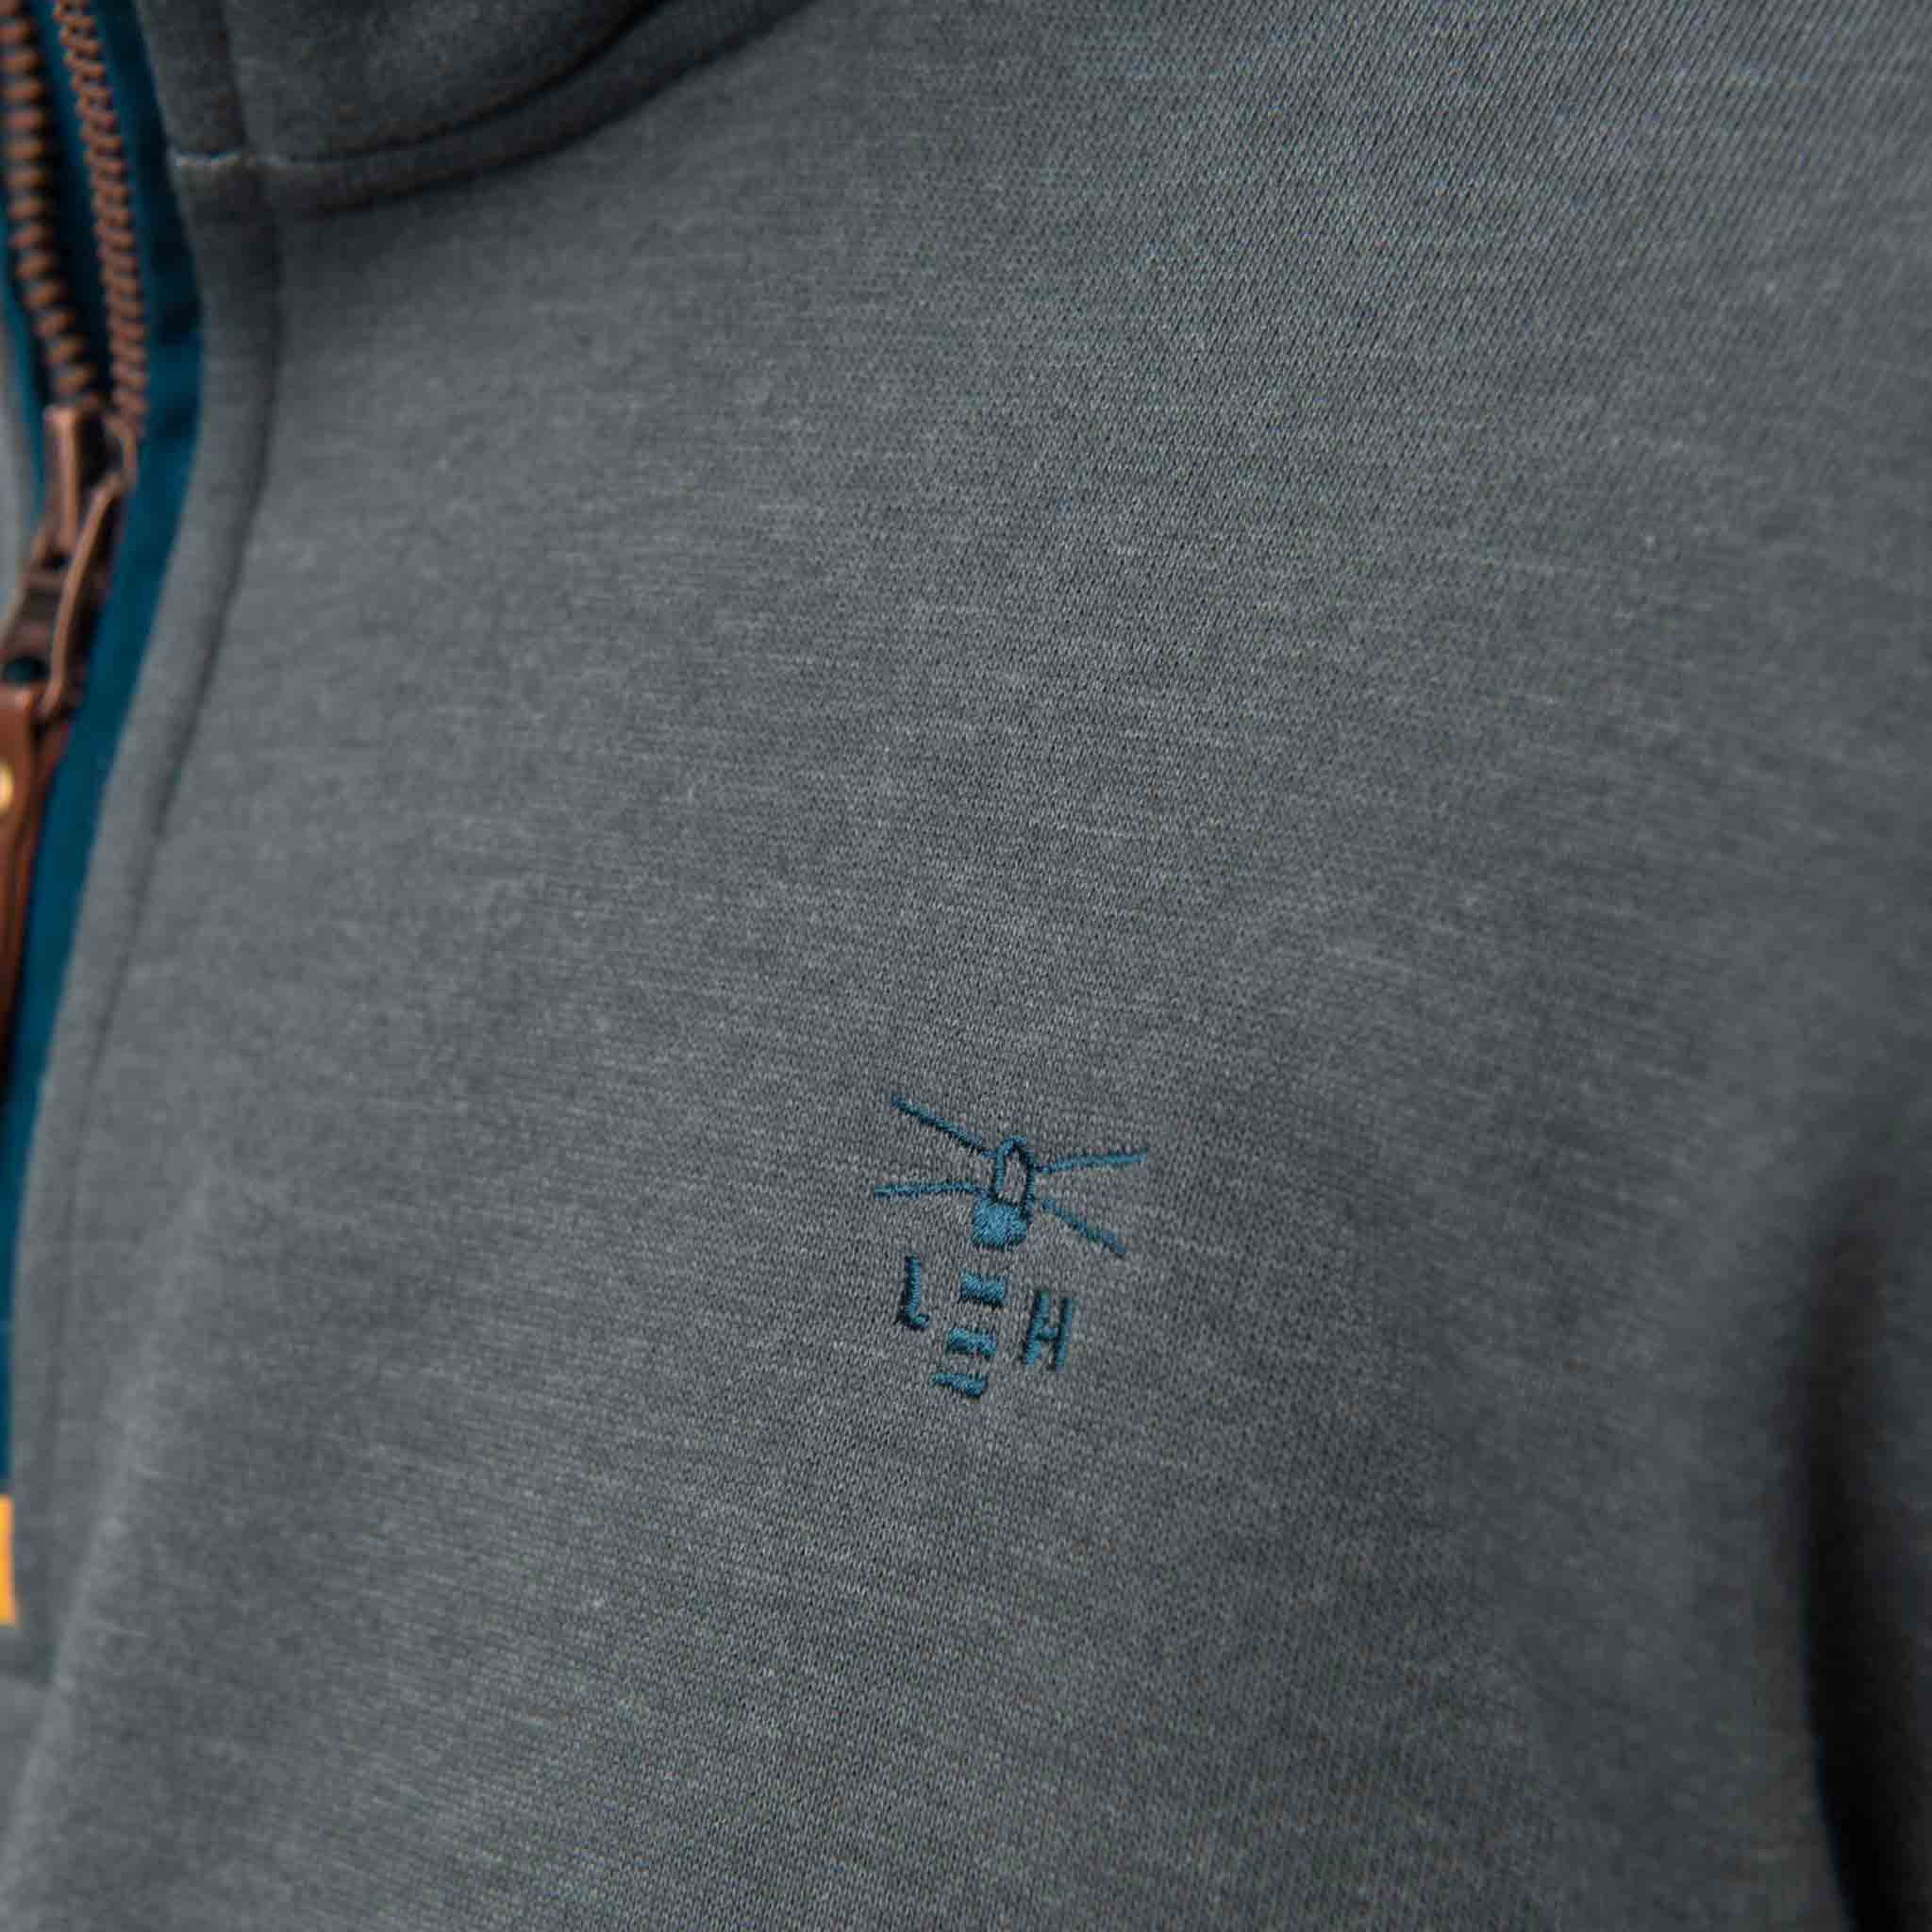 Seafarer Mens Half Zip Sweater in Grey Marl, Modelled Details View | Lighthouse